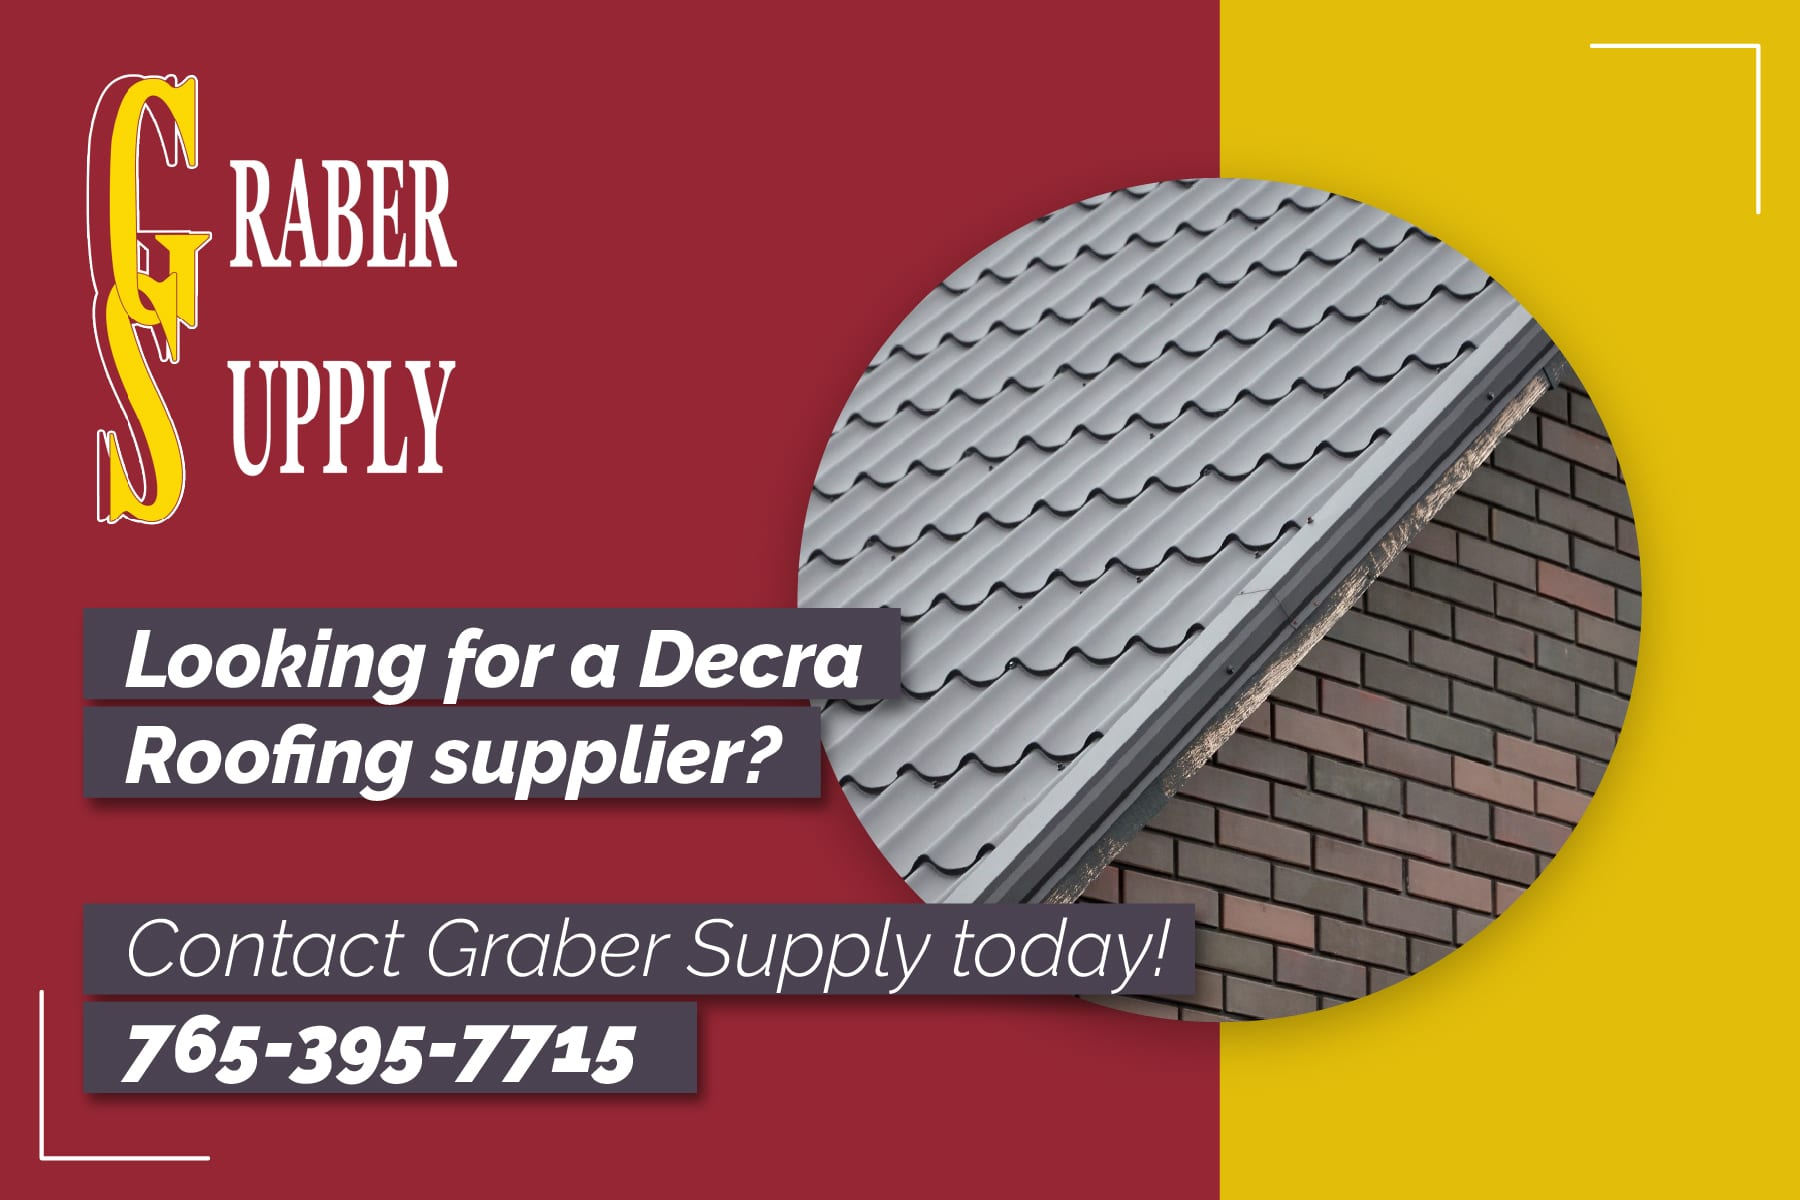 Graber Supply is a supplier of decra metal roofing